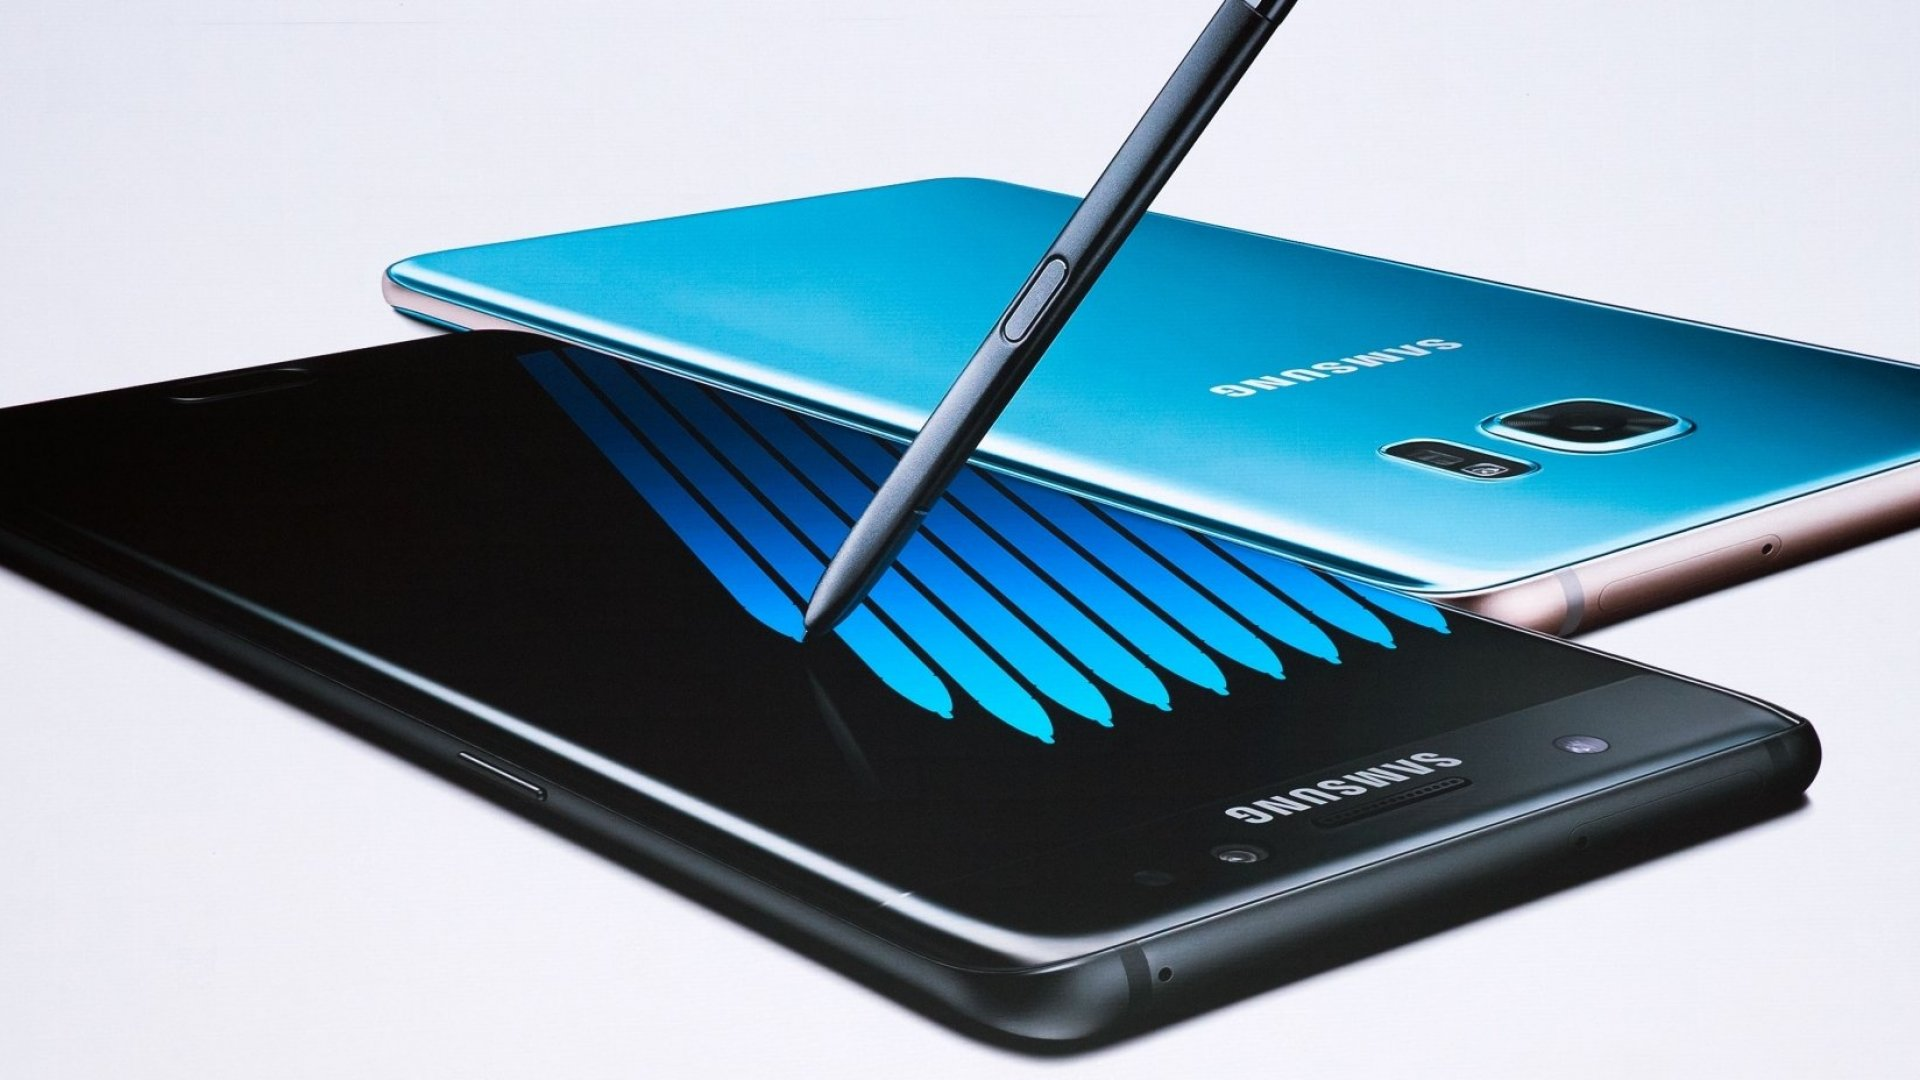 Samsung Announces Galaxy Note 7 Update to Avoid Battery Overheating